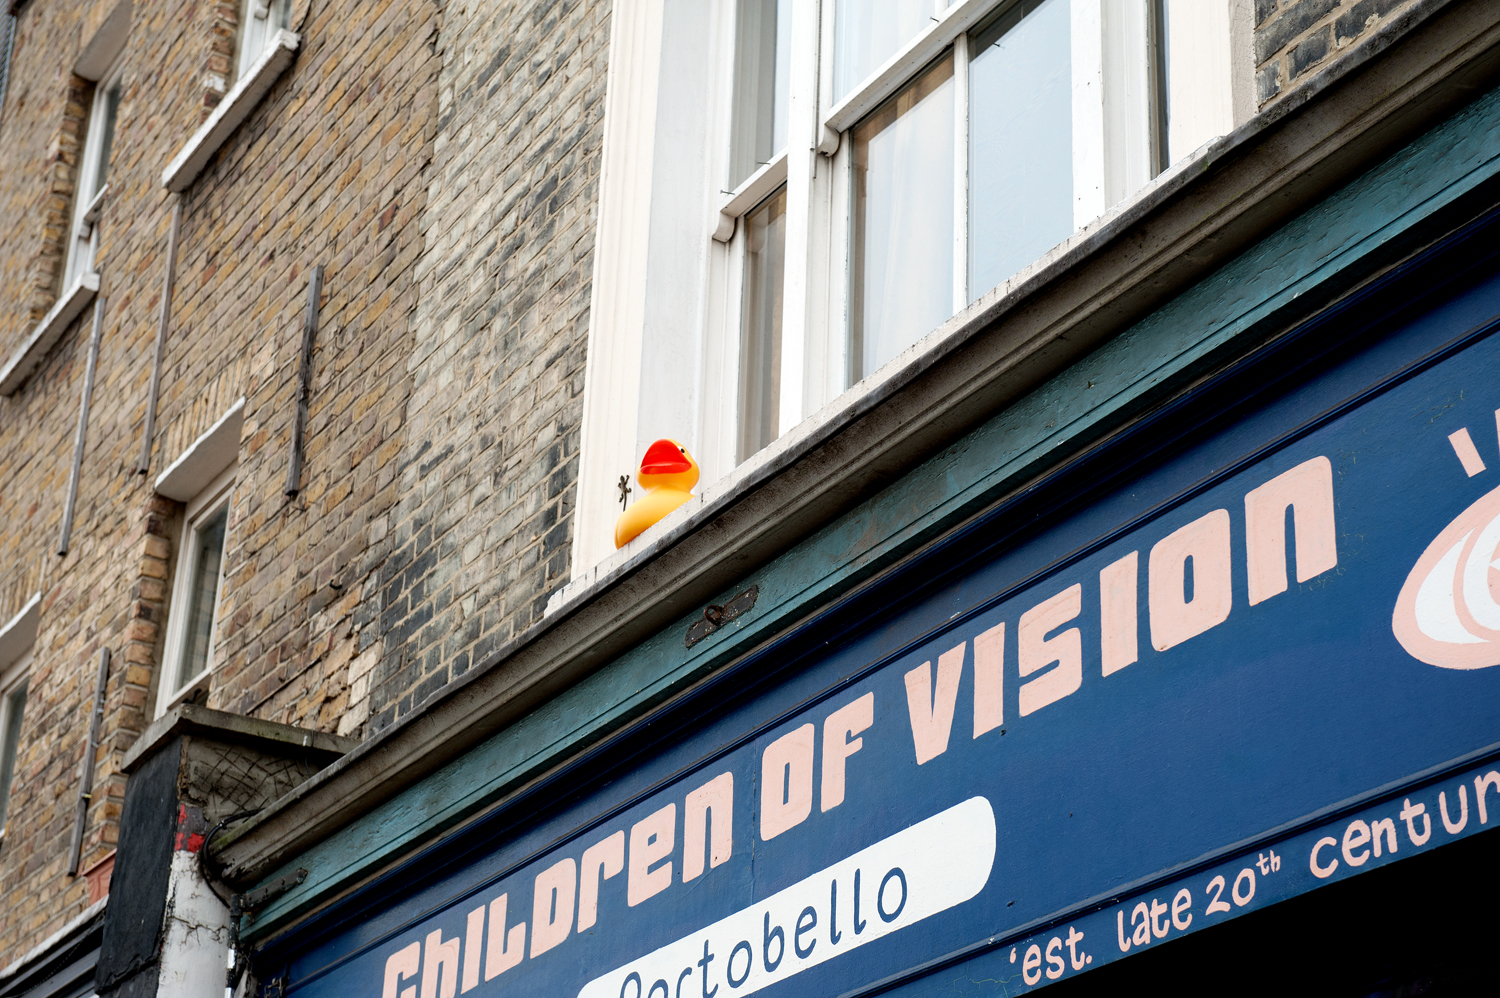 children of vision (or, rubber ducky, you're the one)  [portobello road, notting hill, london, england, 2011]